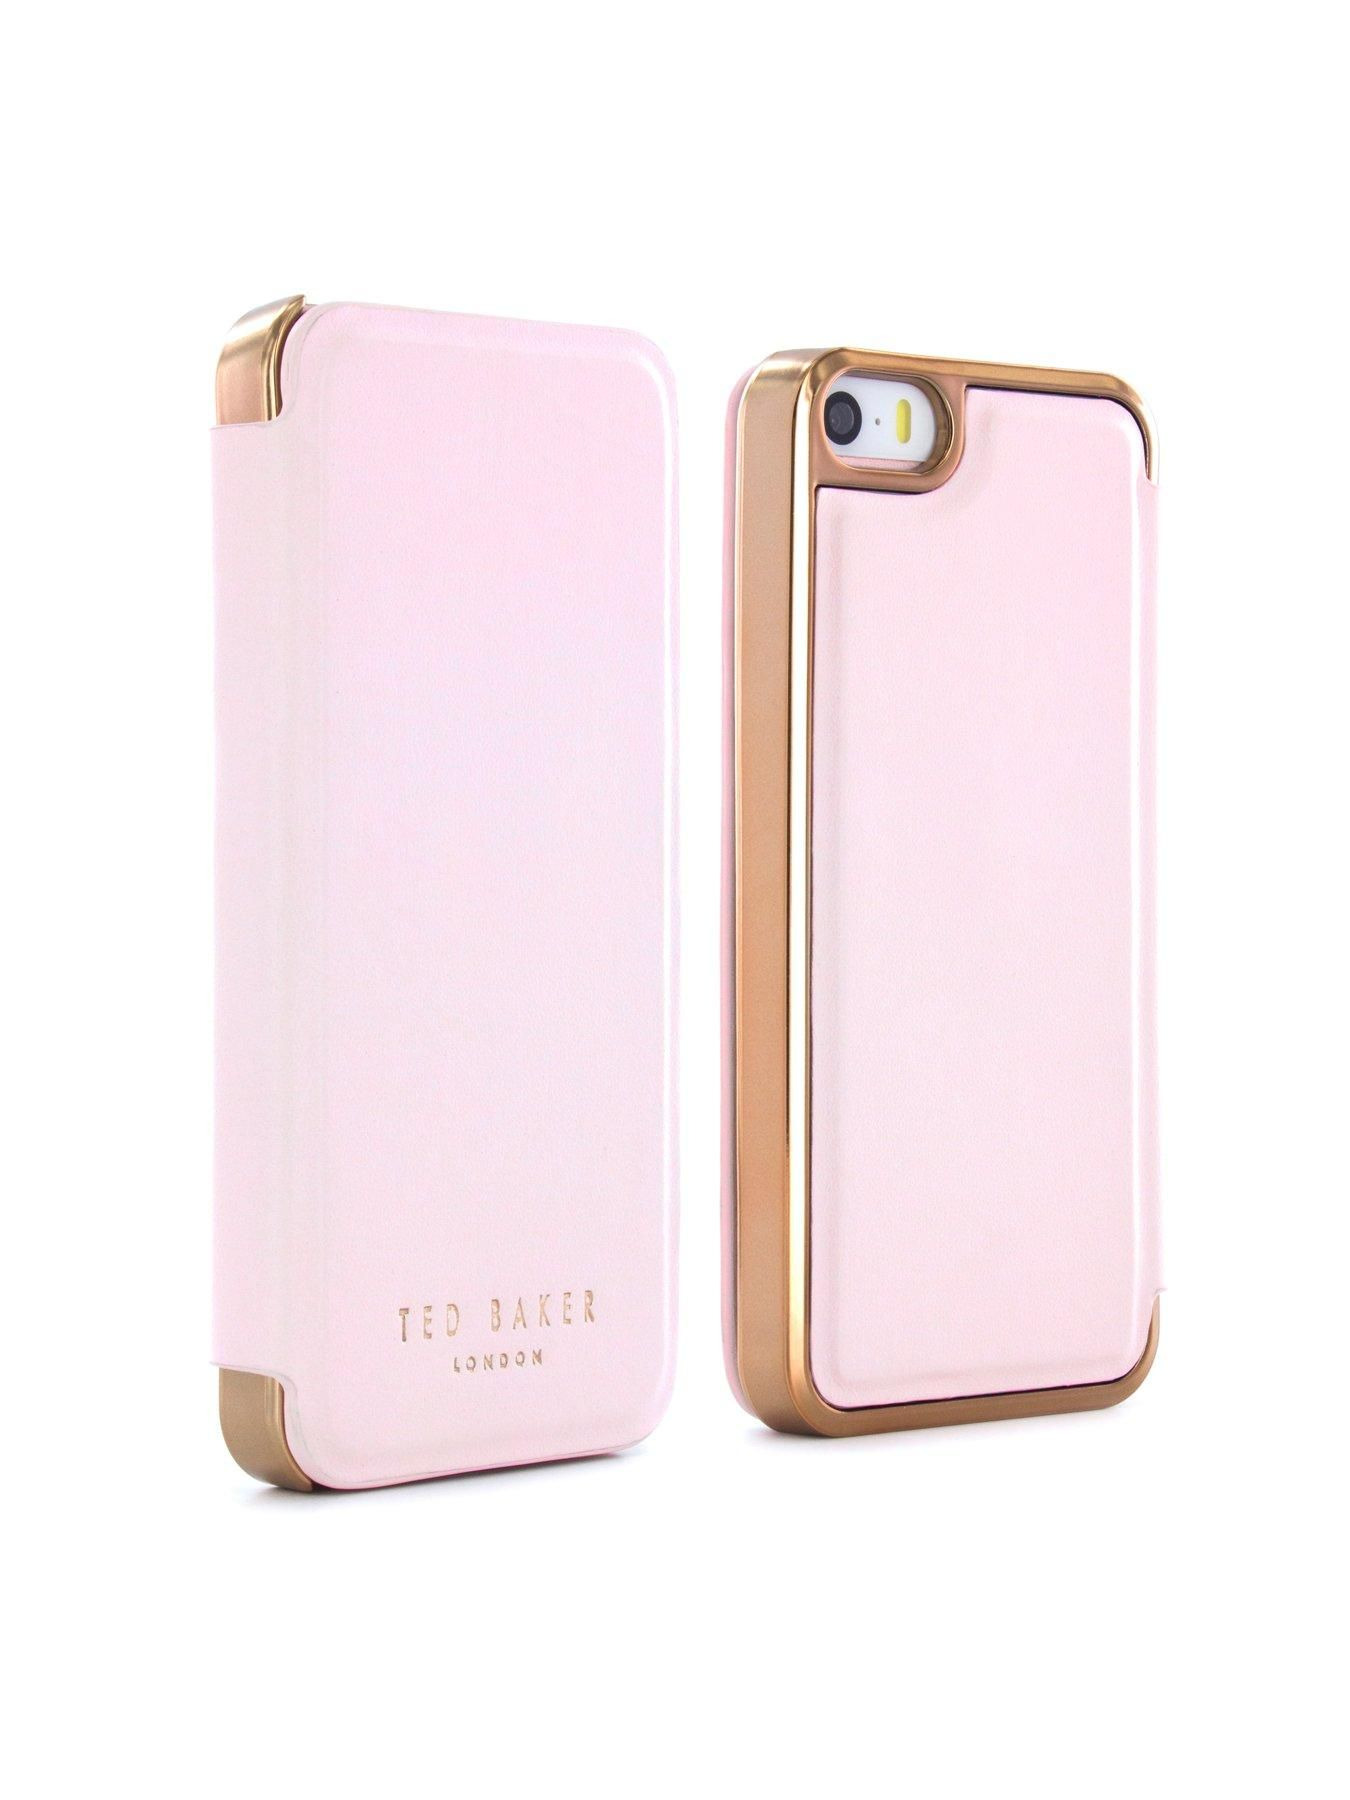 083c69ff0278 Ted Baker Slim Mirror Case (Apple iPhone 5 5S SE) - SHAEN (Nude Rose  Gold)Depth  13 MMHeight  125 MMWidth  65 MMOfficial Ted Baker smartphone  case